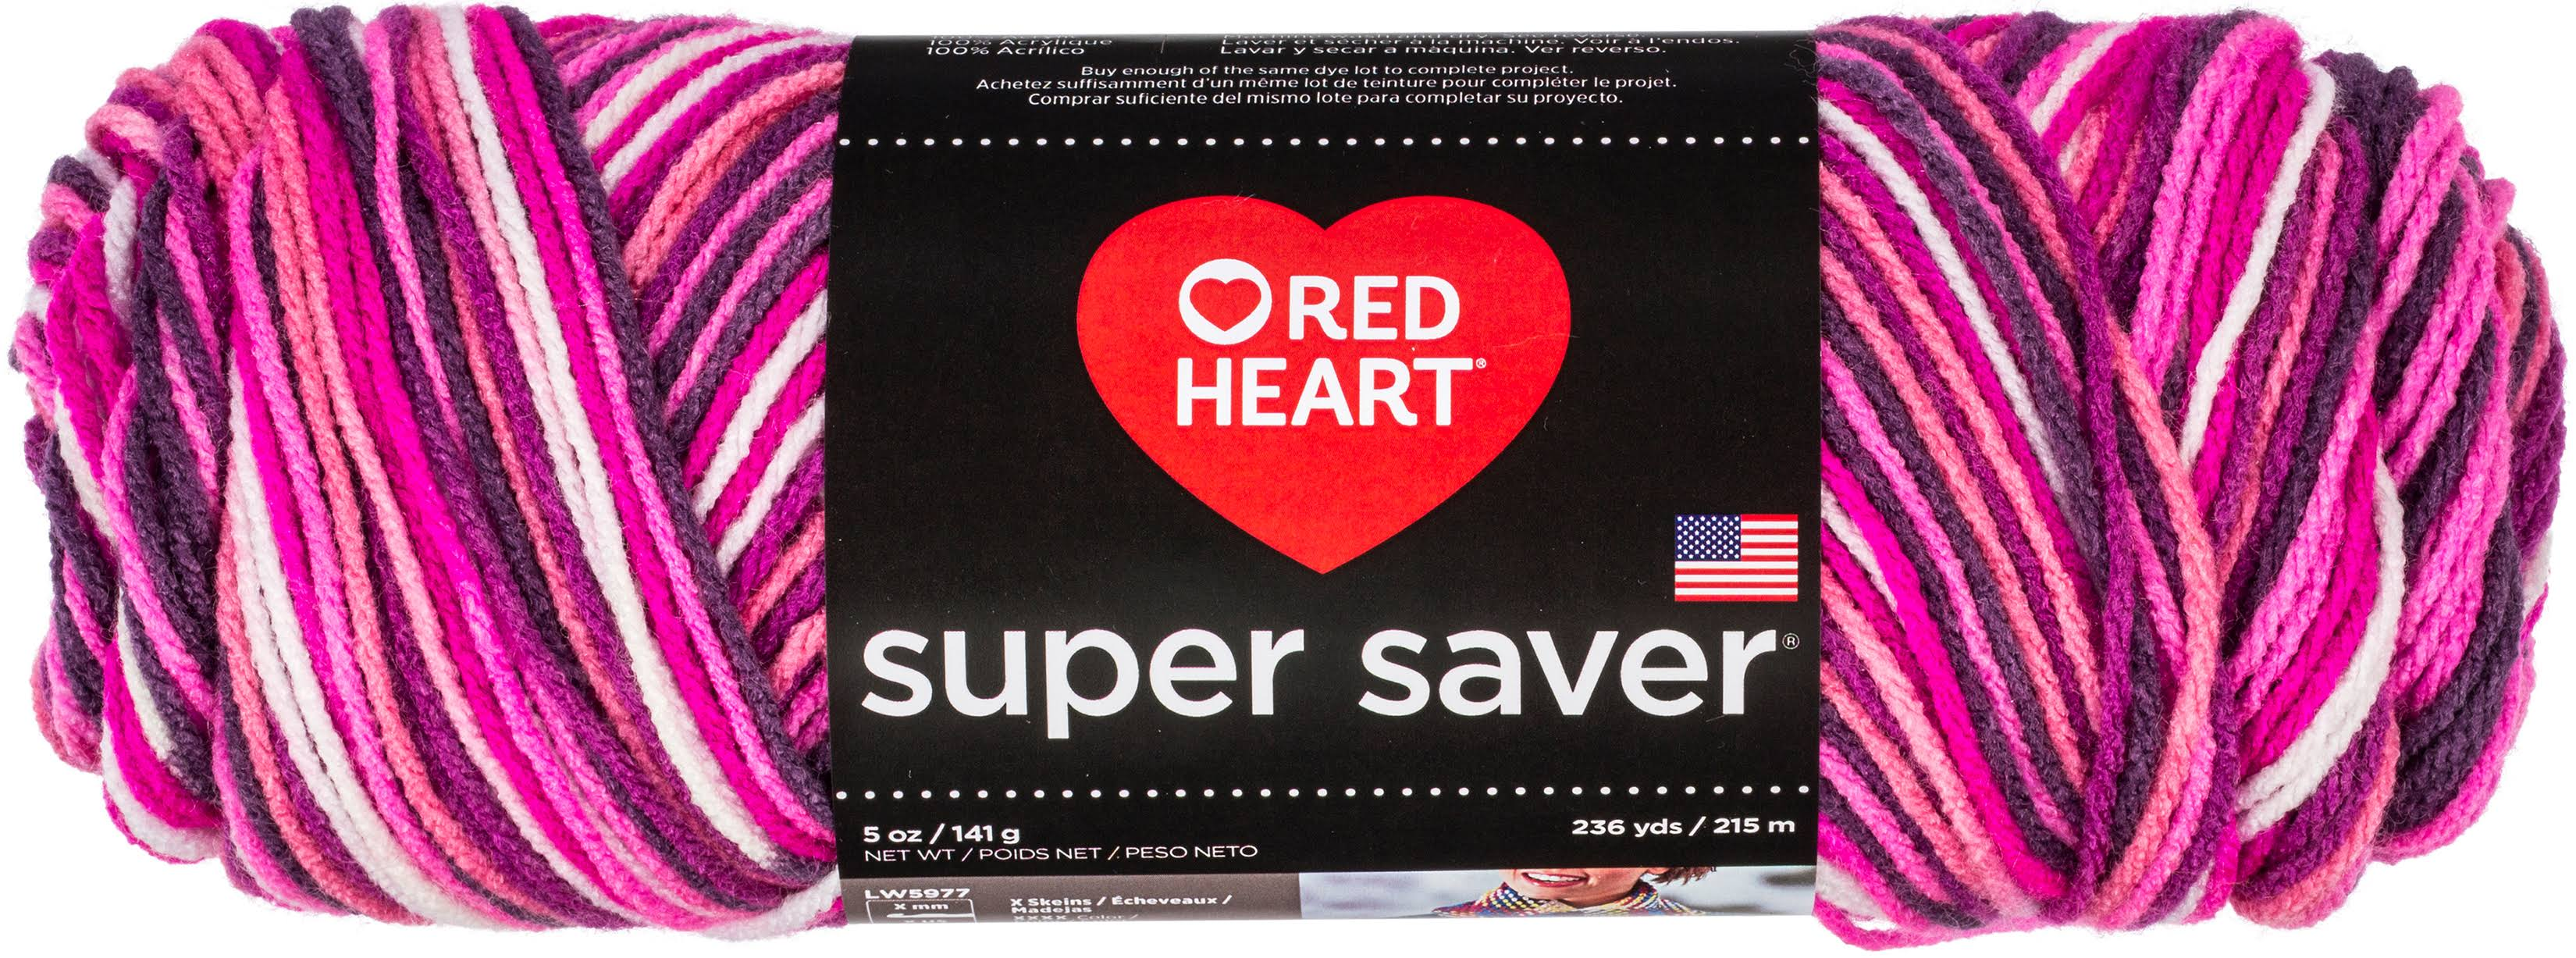 Red Heart Super Saver Pooling Yarn - Berry